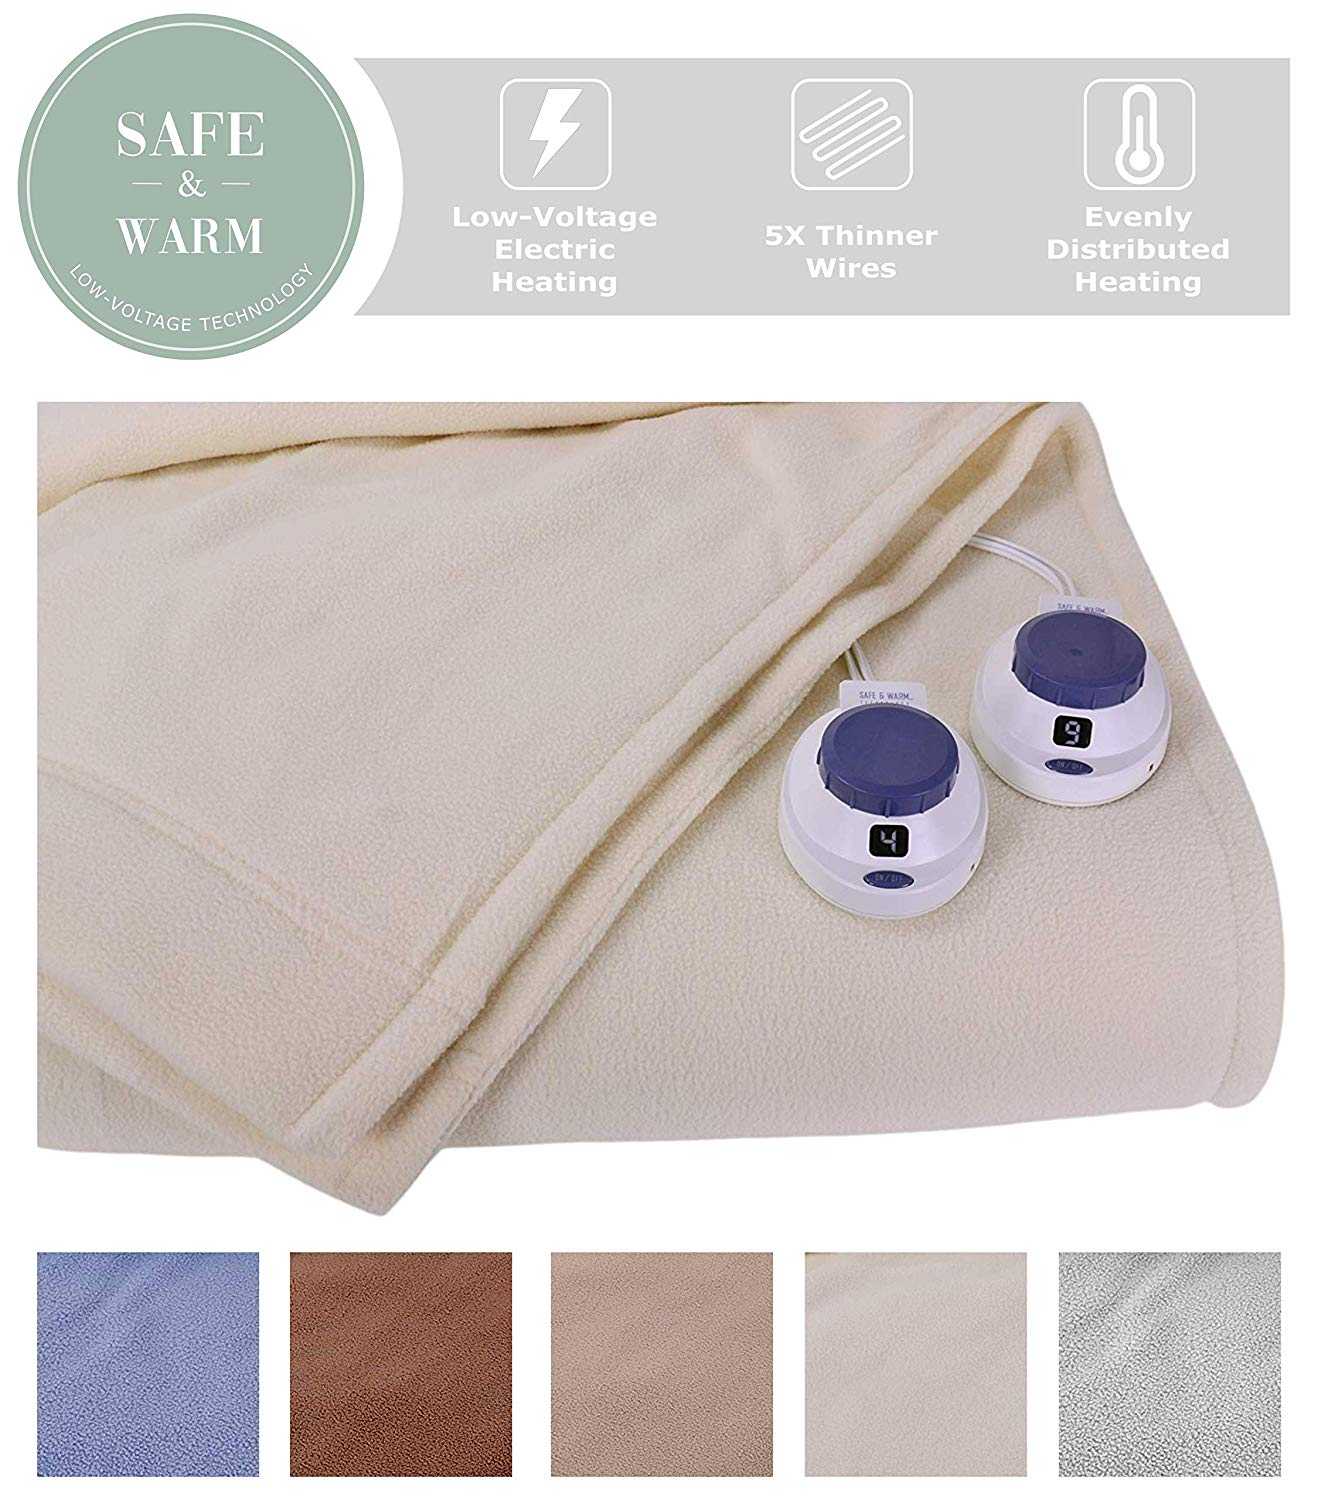 SoftHeat electric blanket from Amazon